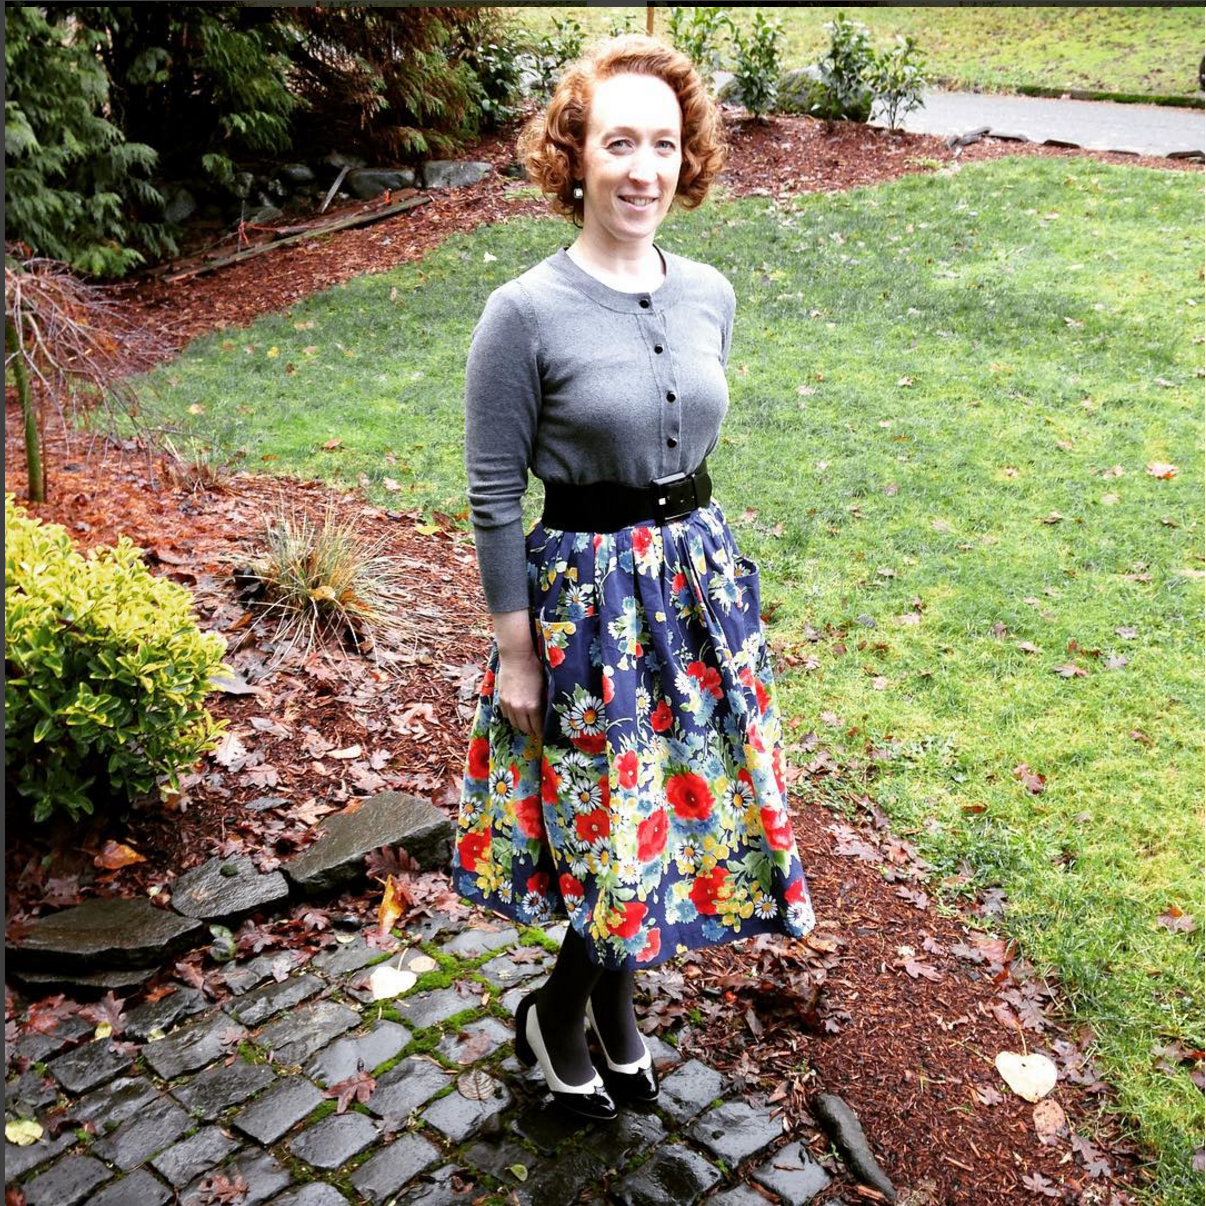 Amy is pure perfection in her Hippolyta's Garden skirt!